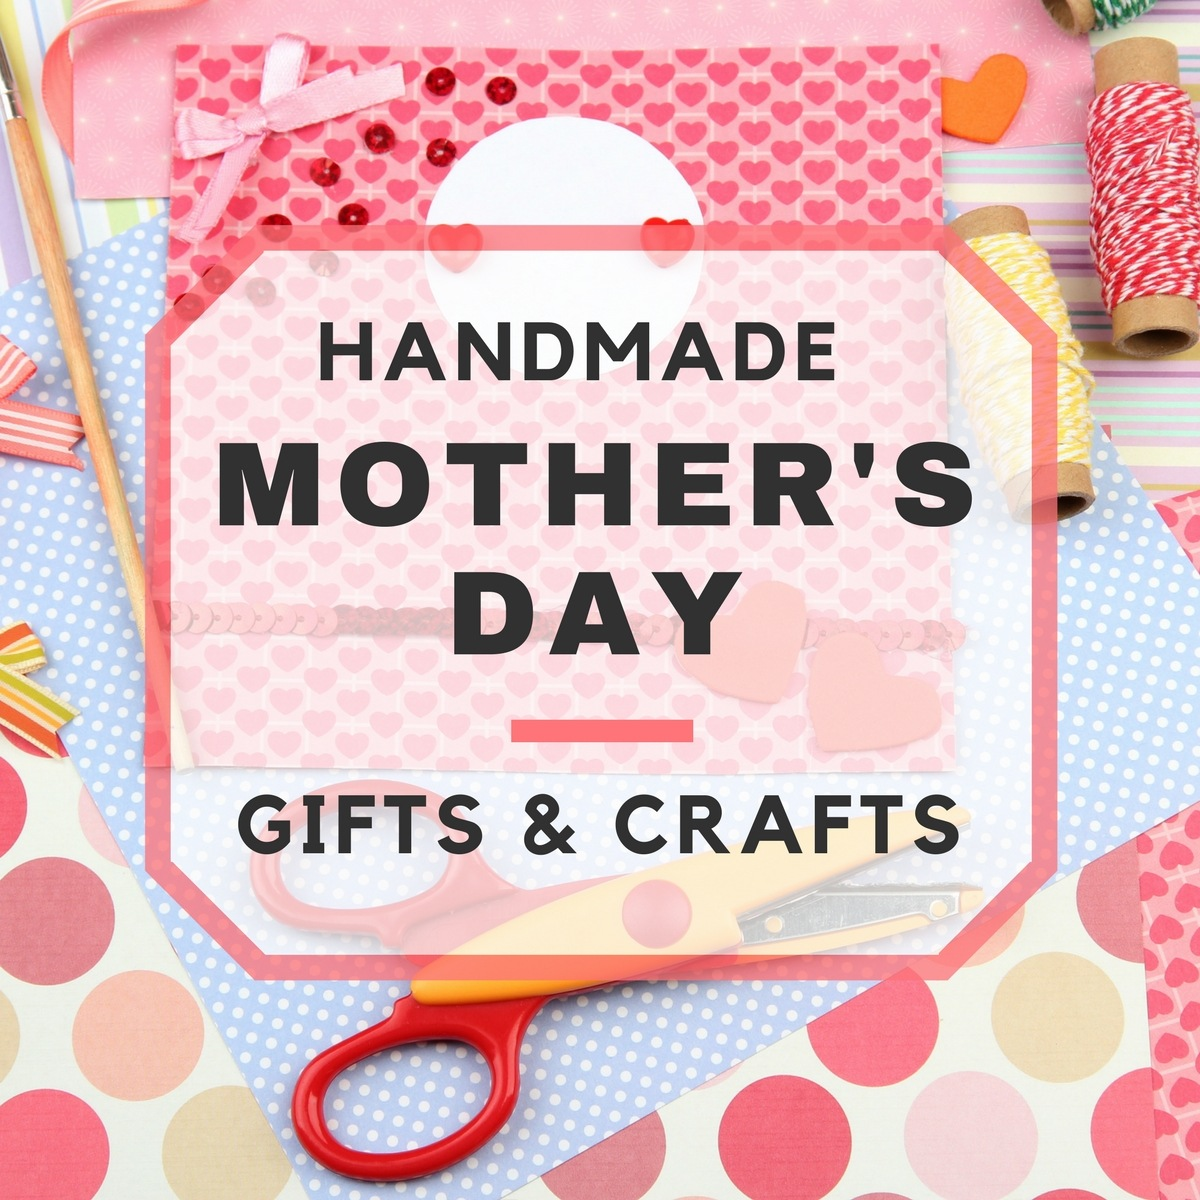 Precious Crafts 1 Mors Day S Clip Art Mors Day S From Son Homemade Mors Day Gifts photos Mothers Day Pictures